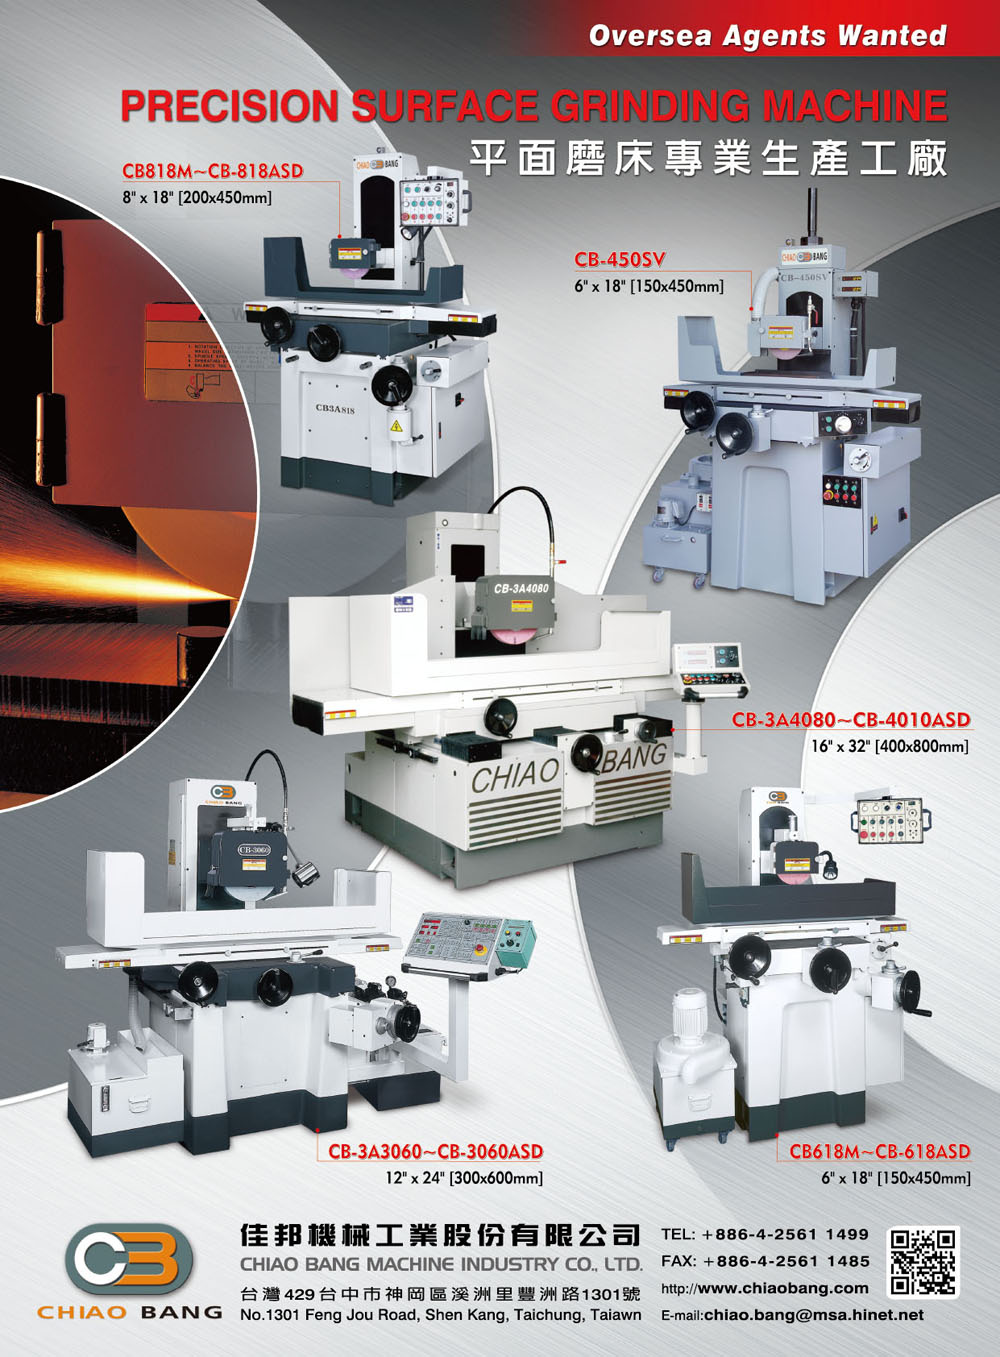 CHIAO BANG MACHINE INDUSTRY CO., LTD.